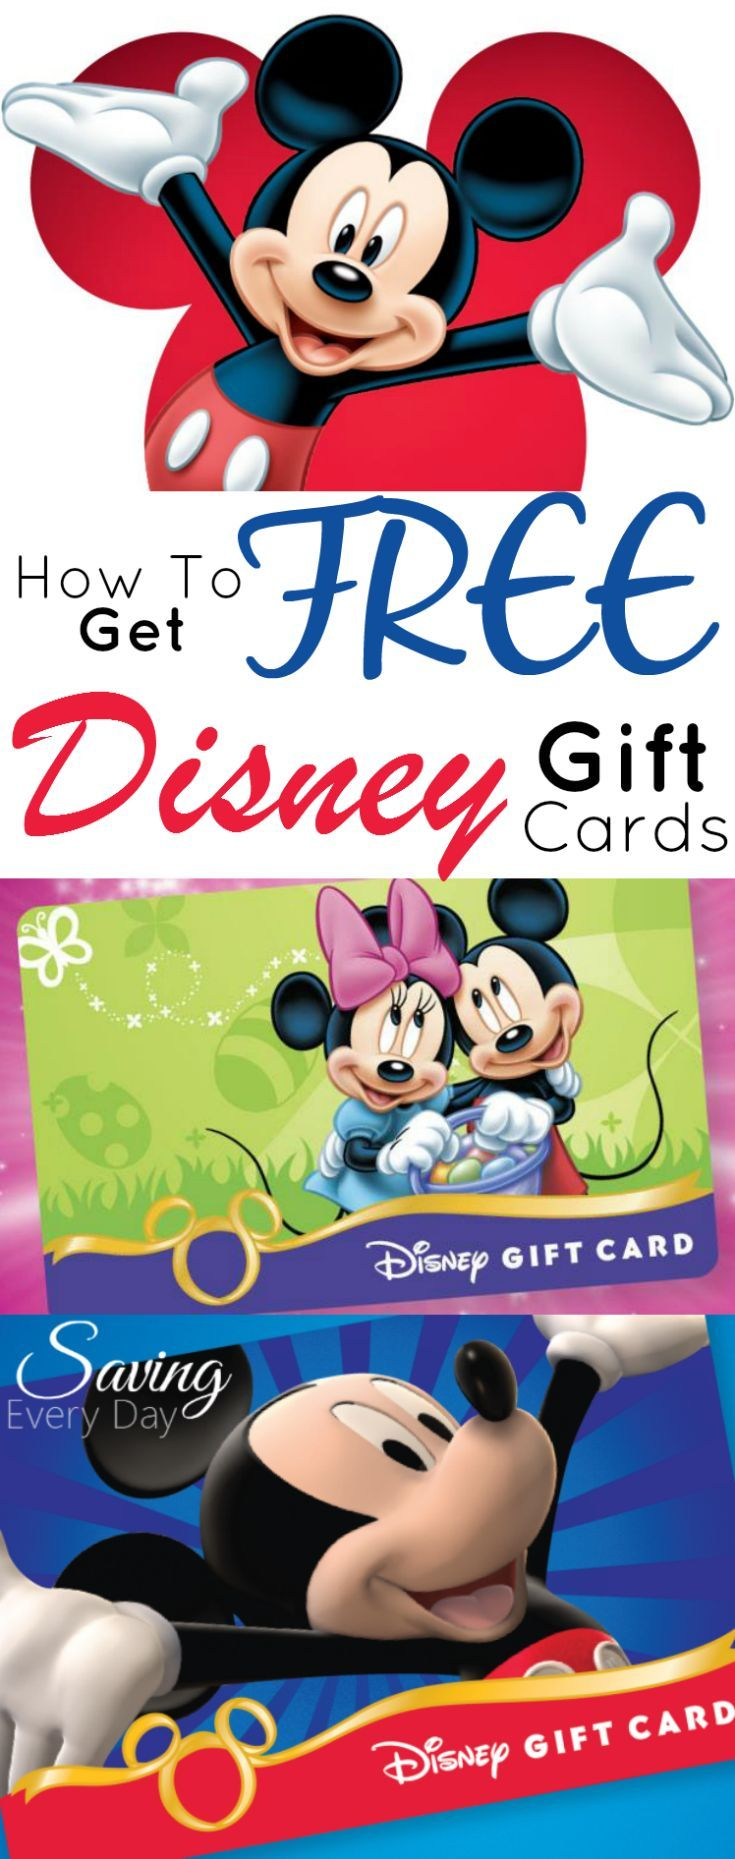 I've been doing this for over 8 years and average $500 - $800 in free cash for my Disney vacation fund :) http://itz-my.com